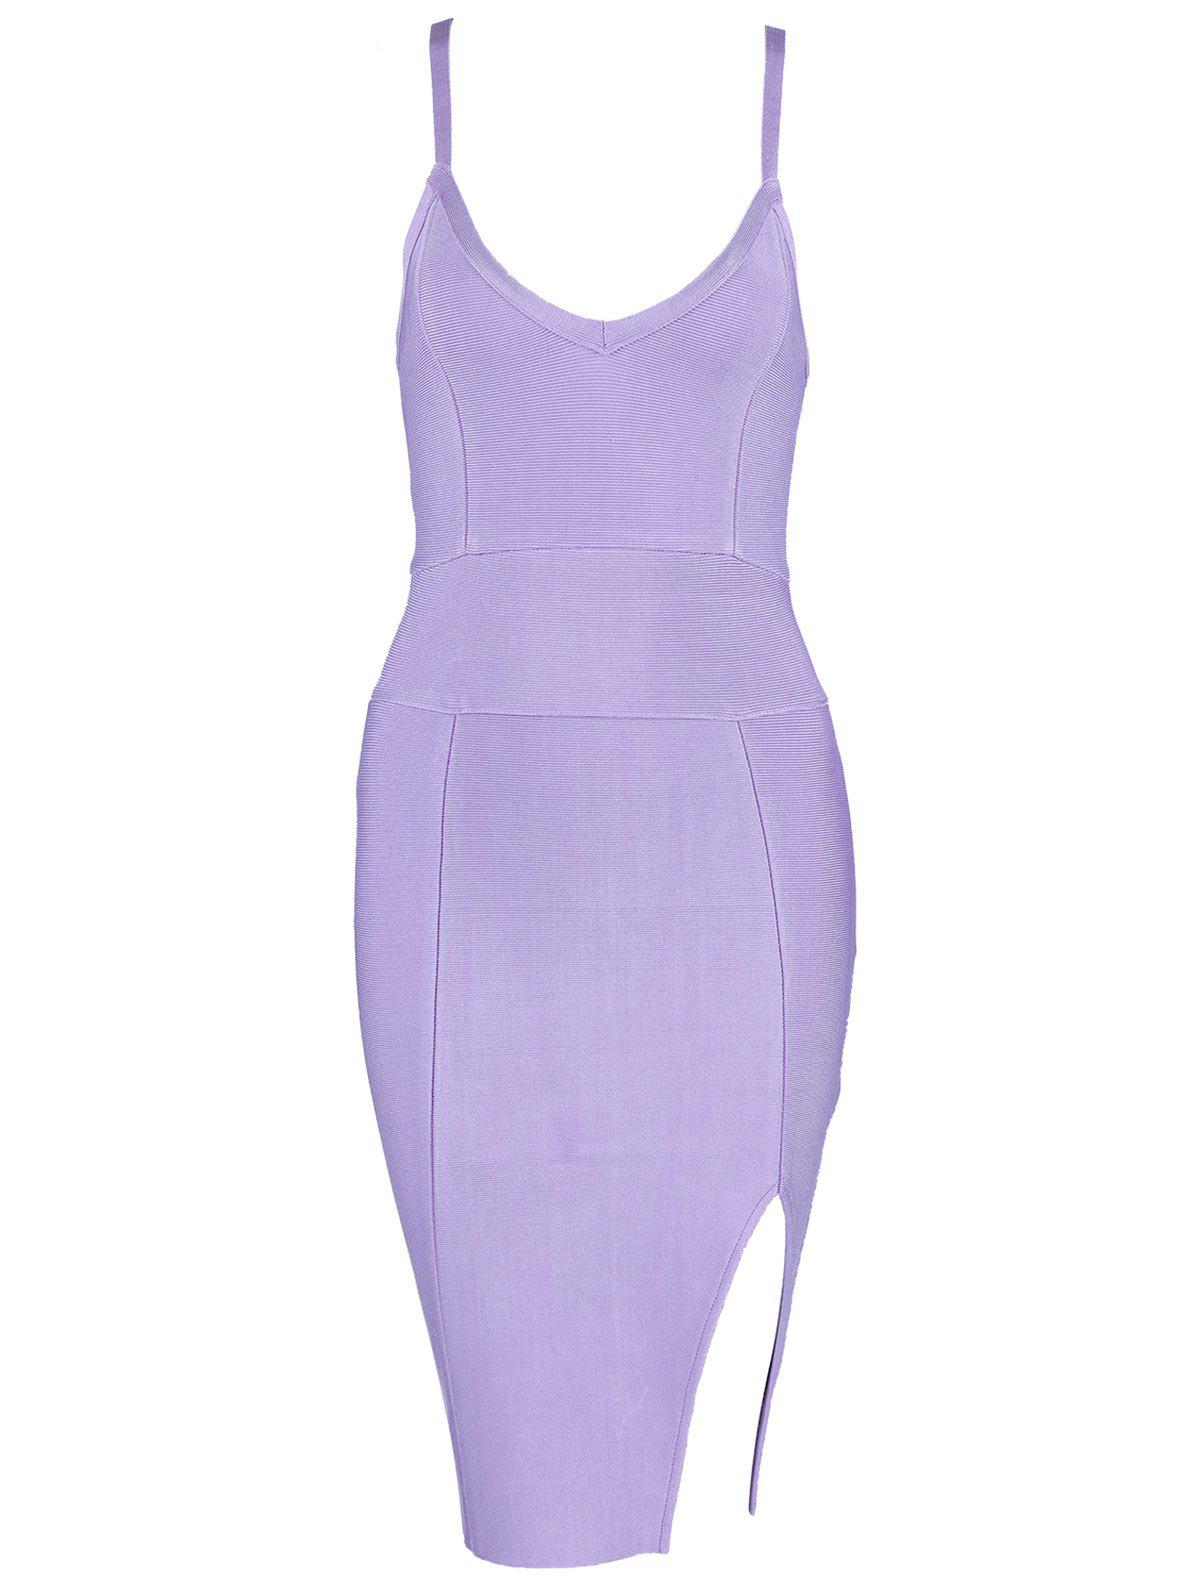 Cami Strap Slit Bandage Dress - PURPLE M